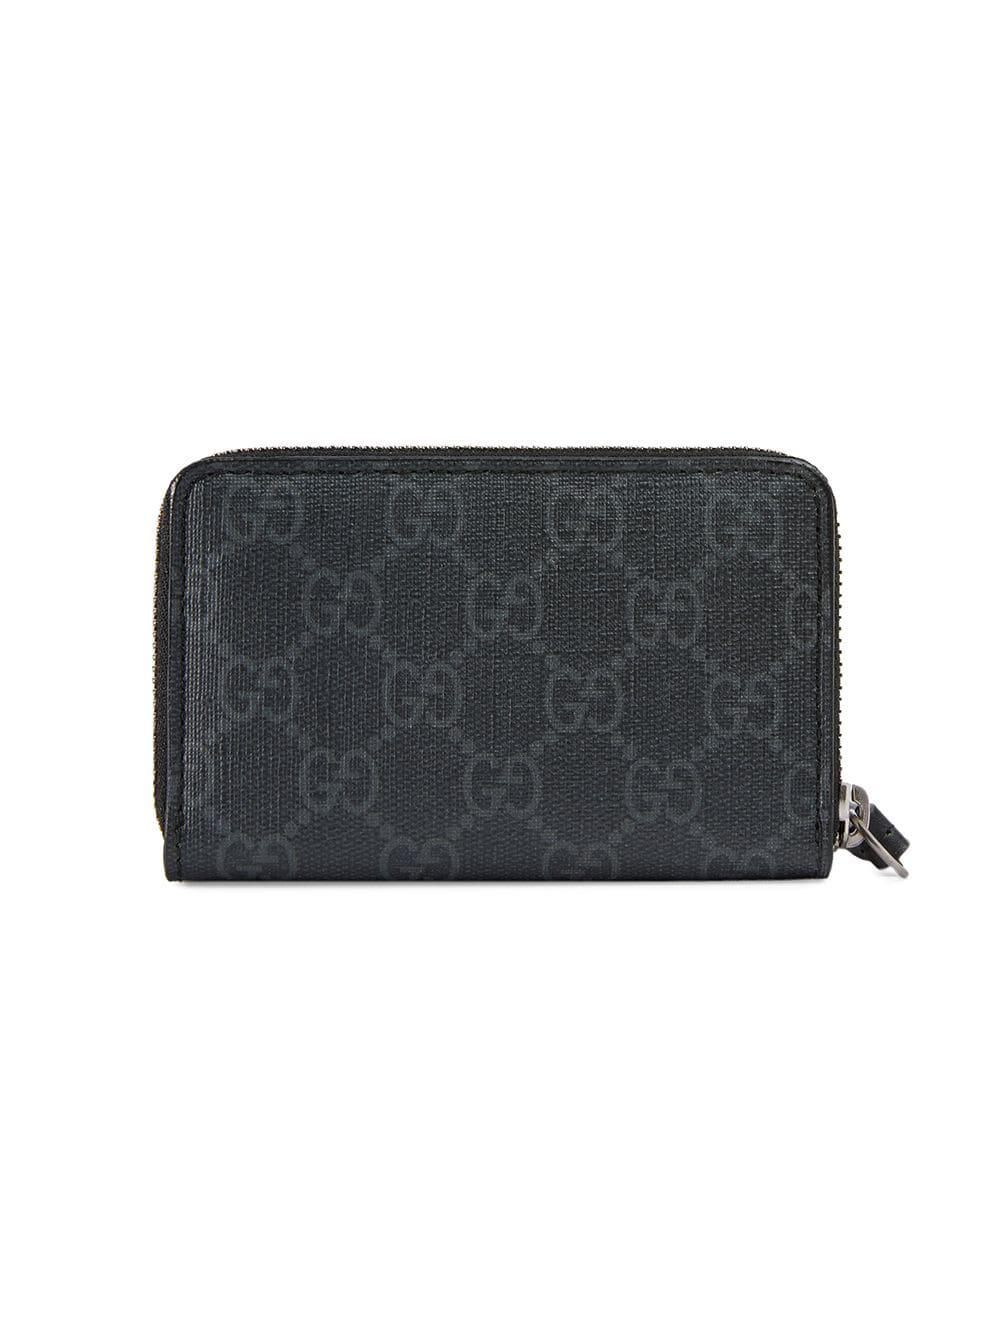 62596fe09c5 Lyst - Gucci GG Supreme Card Case With Wolf in Black for Men